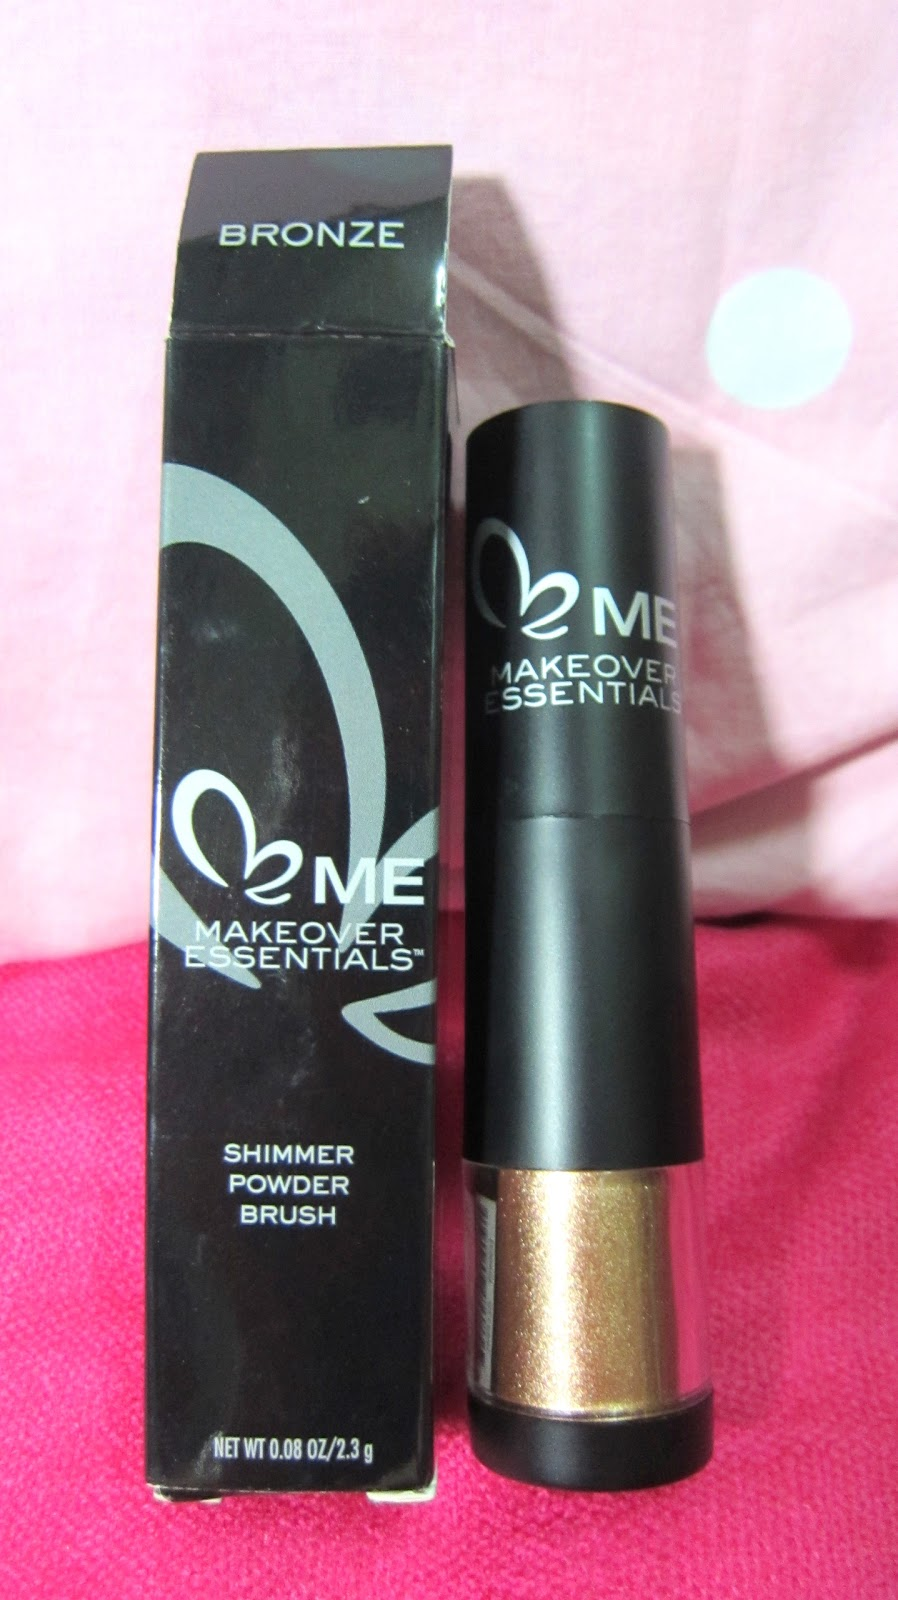 Makeup Essentials Must Haves From Makeup Artists Part 1: MAKEOVER ESSENTIALS UK BRONZER REVIEW